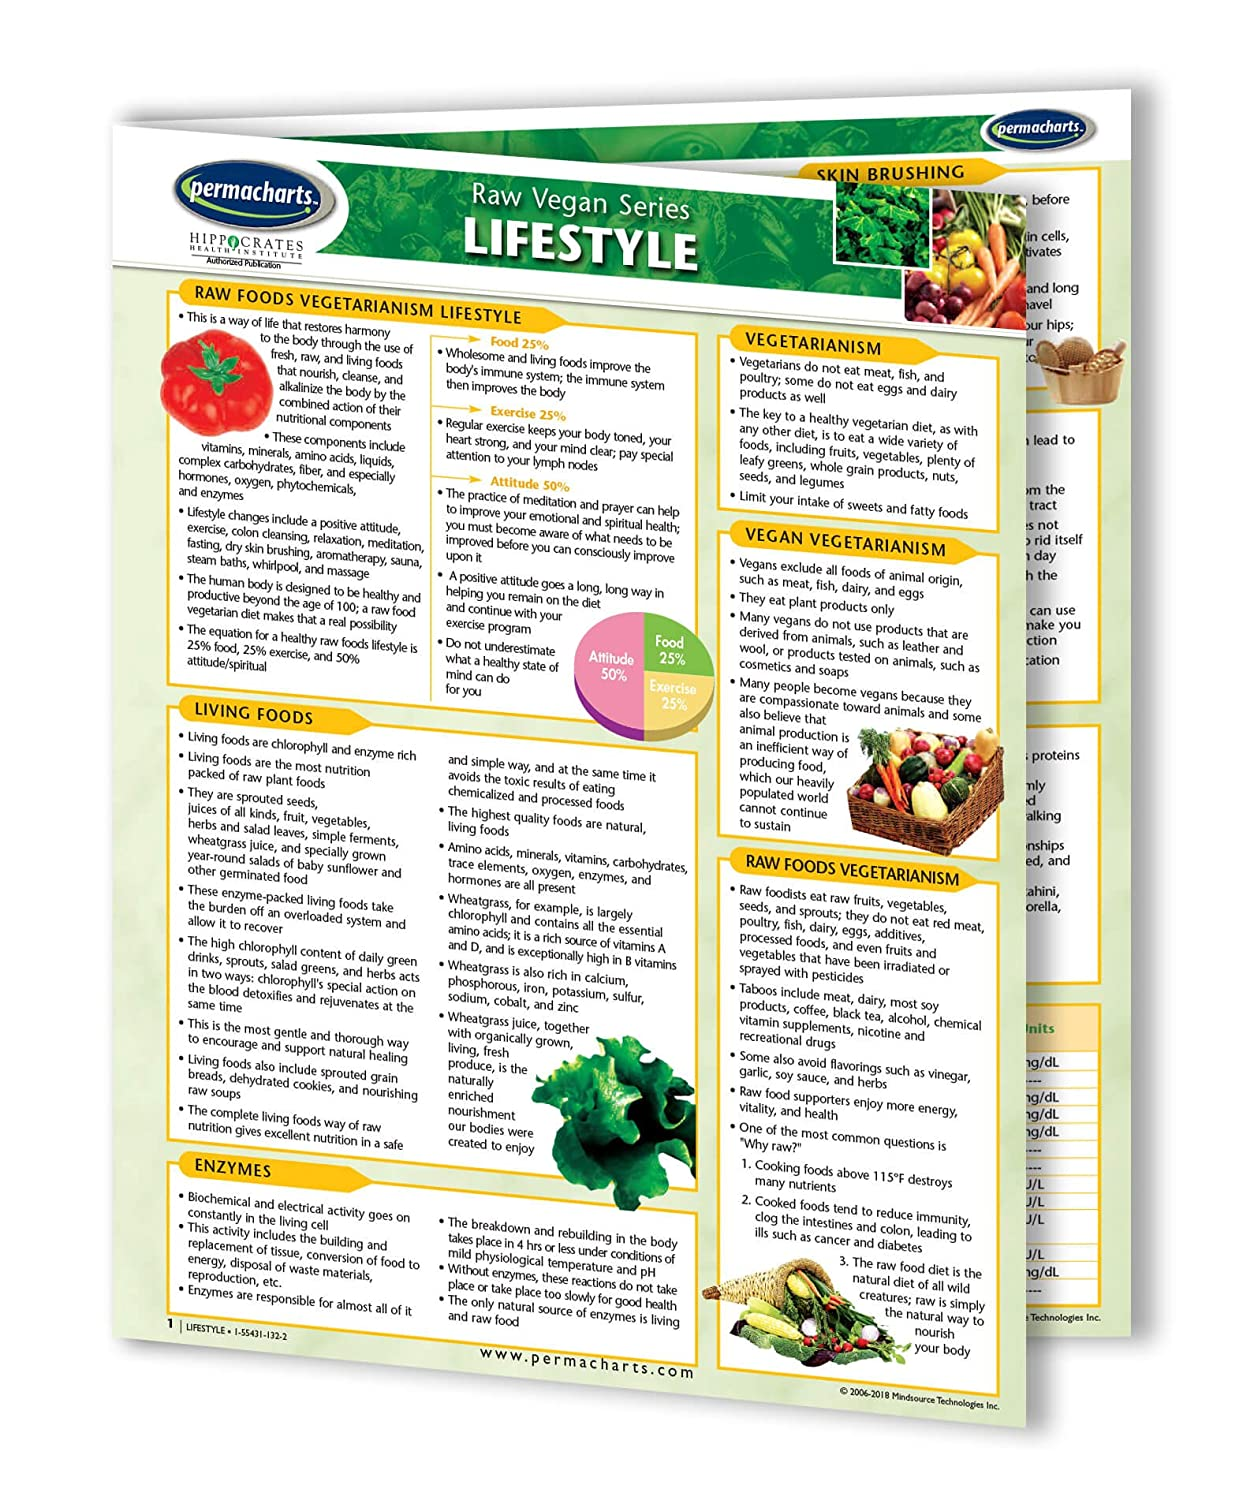 Vegan Lifestyle Guide - Raw Food - Vegan Quick Reference Guide by Permacharts